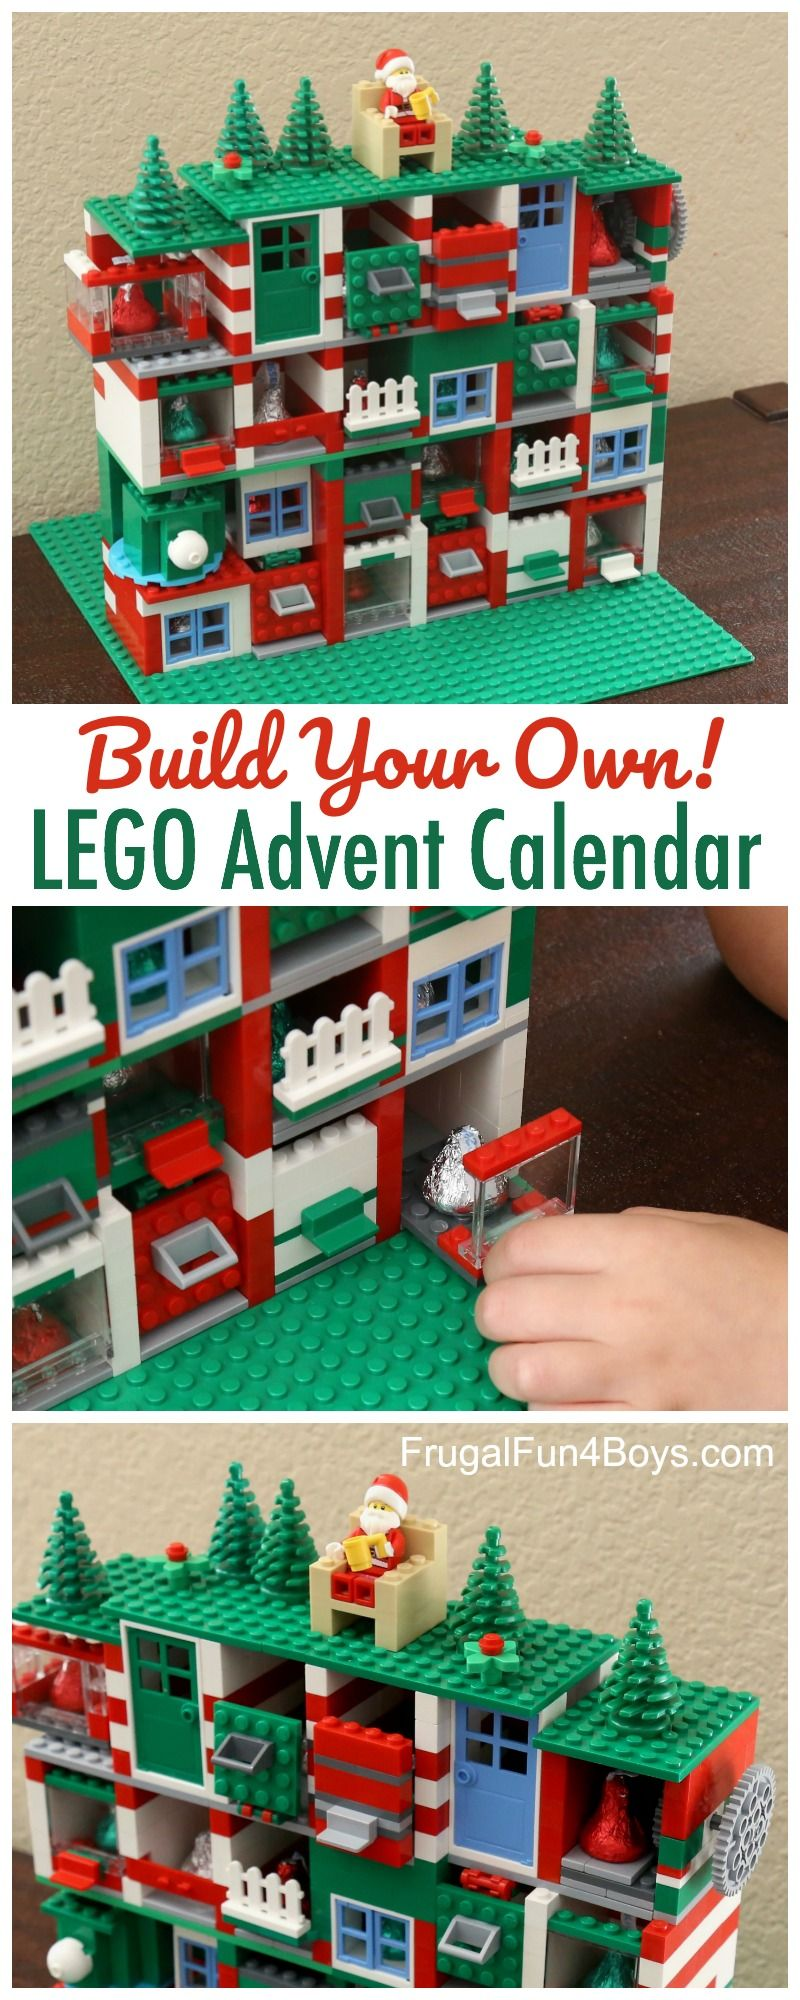 How To Build An Awesome Lego Advent Calendar With Doors And